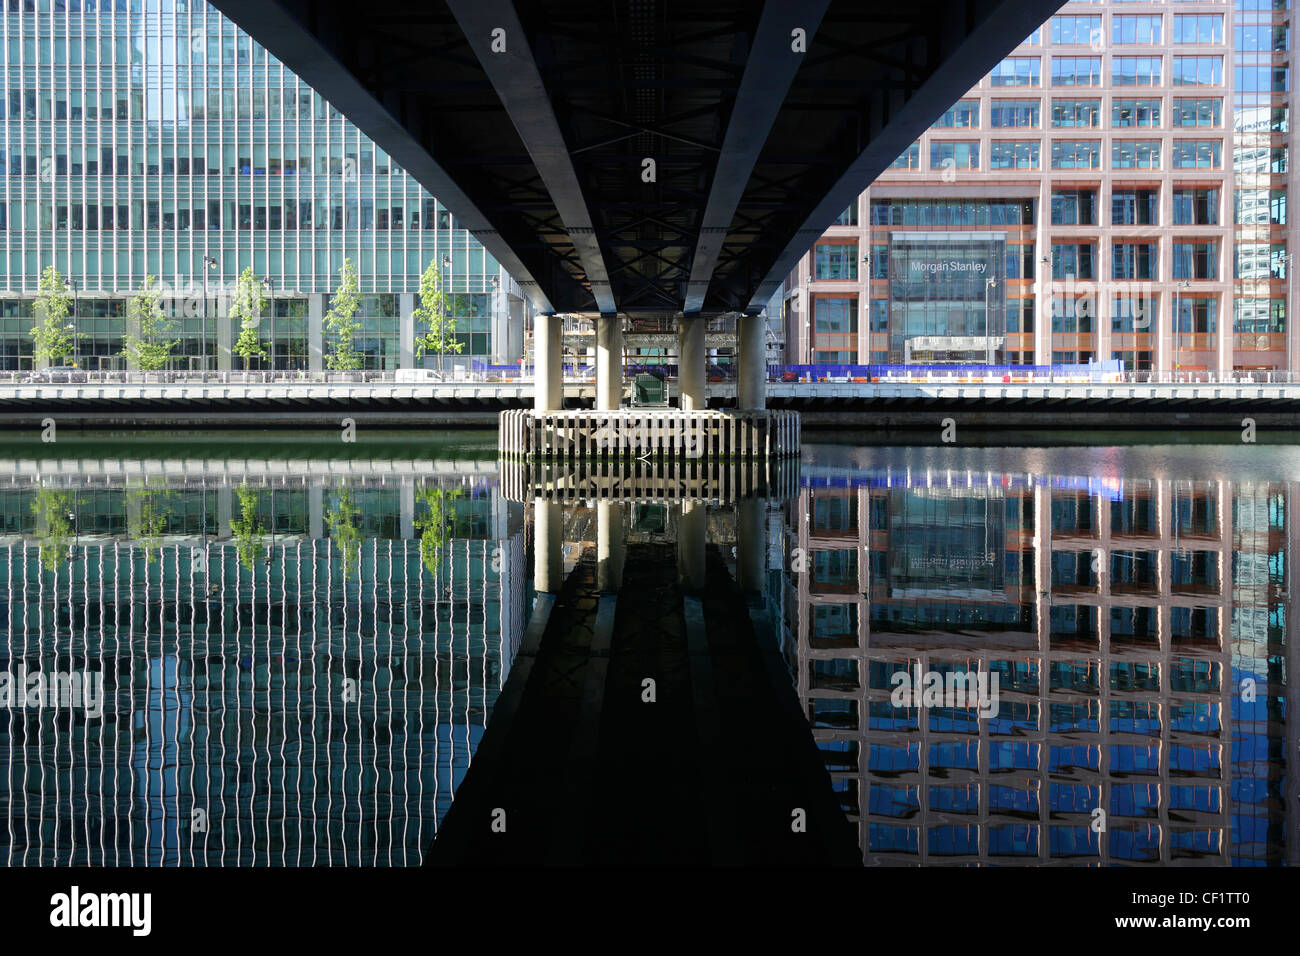 Reflection from buildings, part of the Canary Wharf development in West India Millwall Docks on the Isle of Dogs - Stock Image